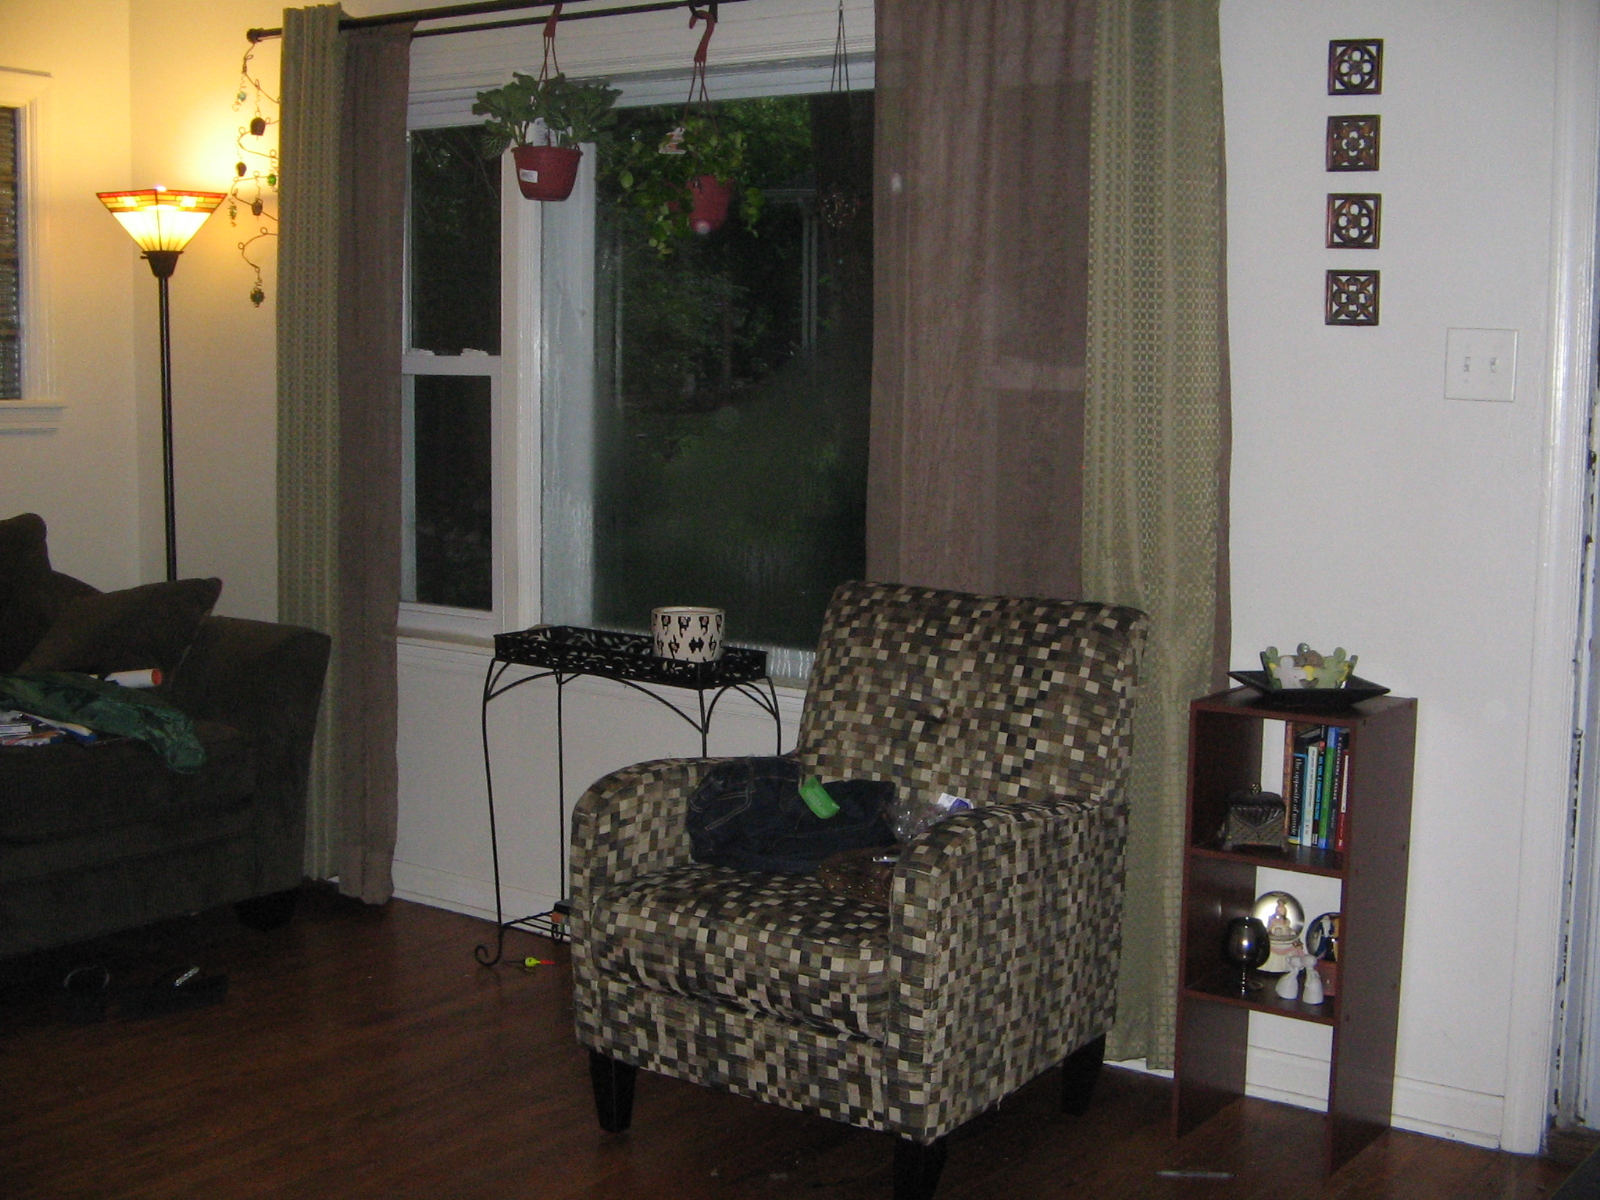 Blank Living Room Wall Need Help! (mirror, Floor, Paint. Yellow And Black Living Room. Classy Living Rooms. Yellow Walls Living Room. Magazine Living Room Ideas. Living Room Kc. Living Room Curtains And Drapes Ideas. Shelves In Living Room. Decorating A Large Wall In Living Room